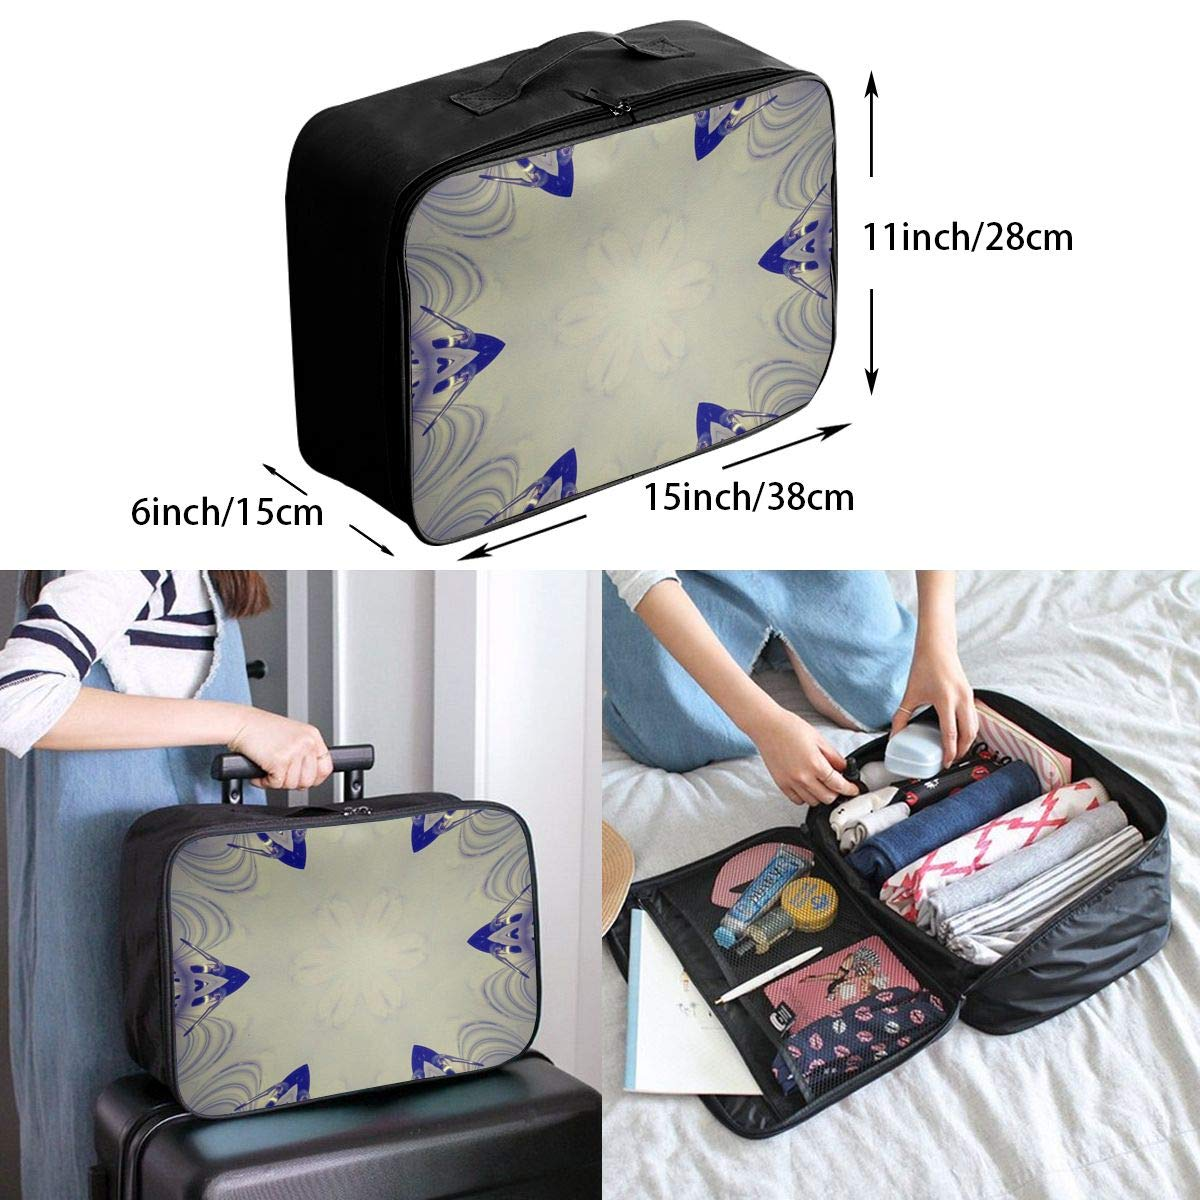 Abstract Surreal Texture Texture Travel Lightweight Waterproof Foldable Storage Carry Luggage Large Capacity Portable Luggage Bag Duffel Bag